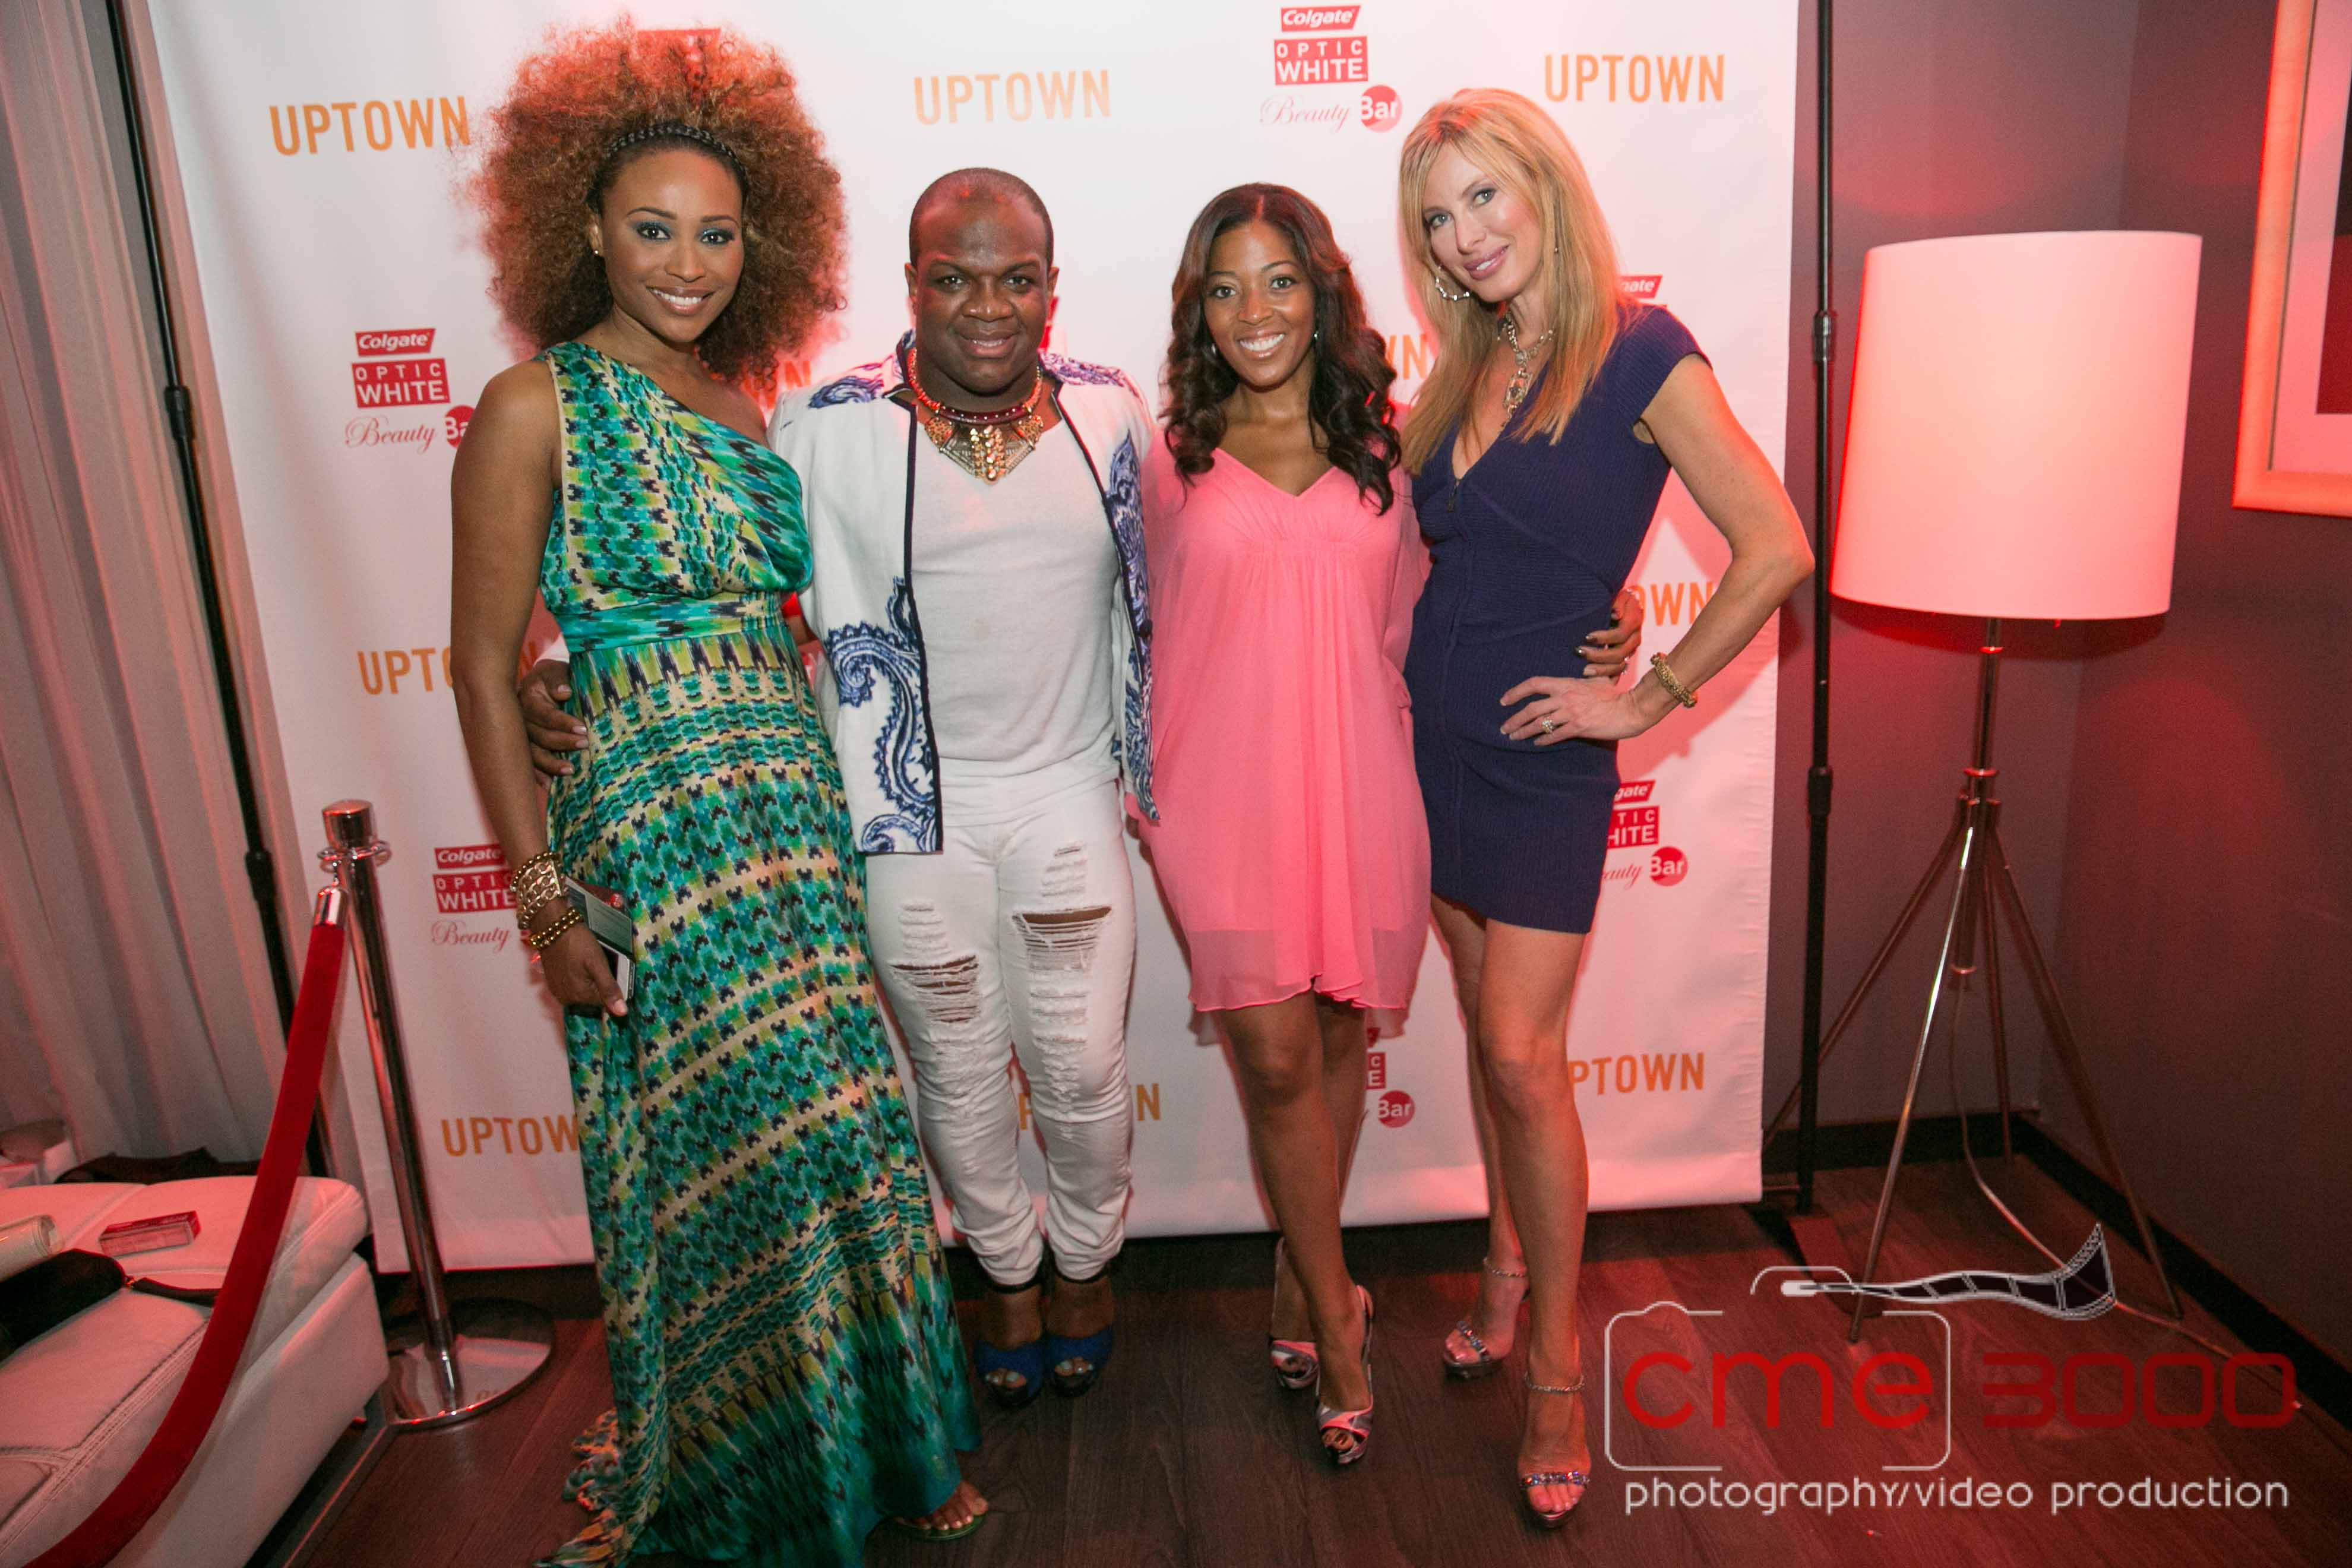 Photos] ATL Overload: Cynthia Bailey Hosts 'UPTOWN' Event + D  Woods